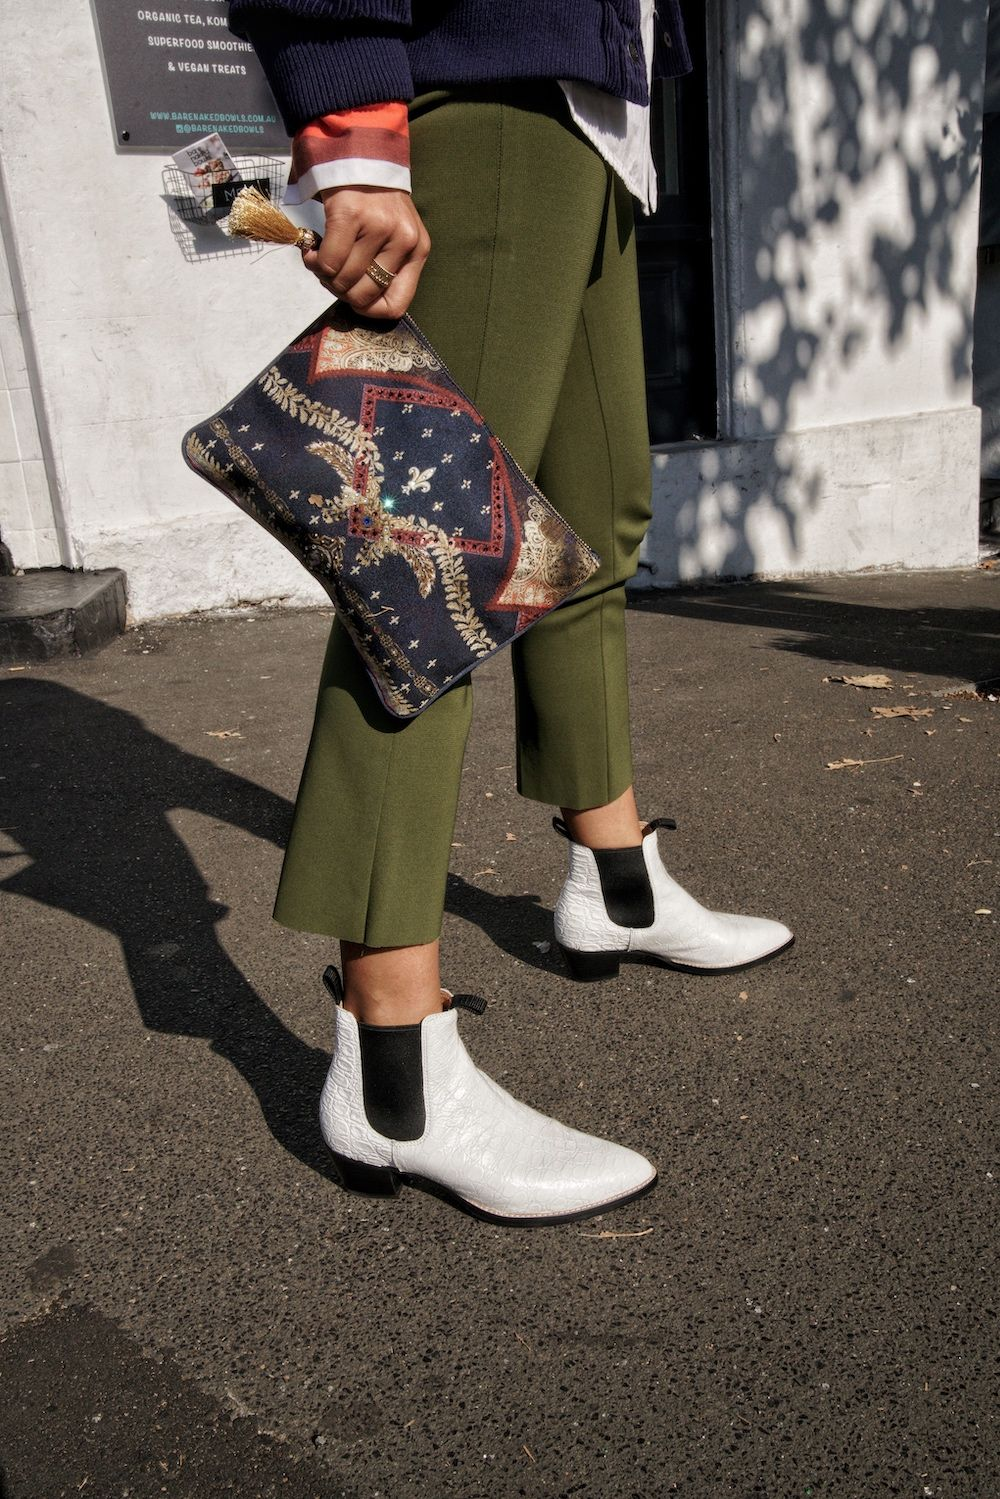 Bared_Footwear_Helen_Chik_White_Woodpecker_Leather_Ankle_Boots_Fashion_Week_Green_Pants